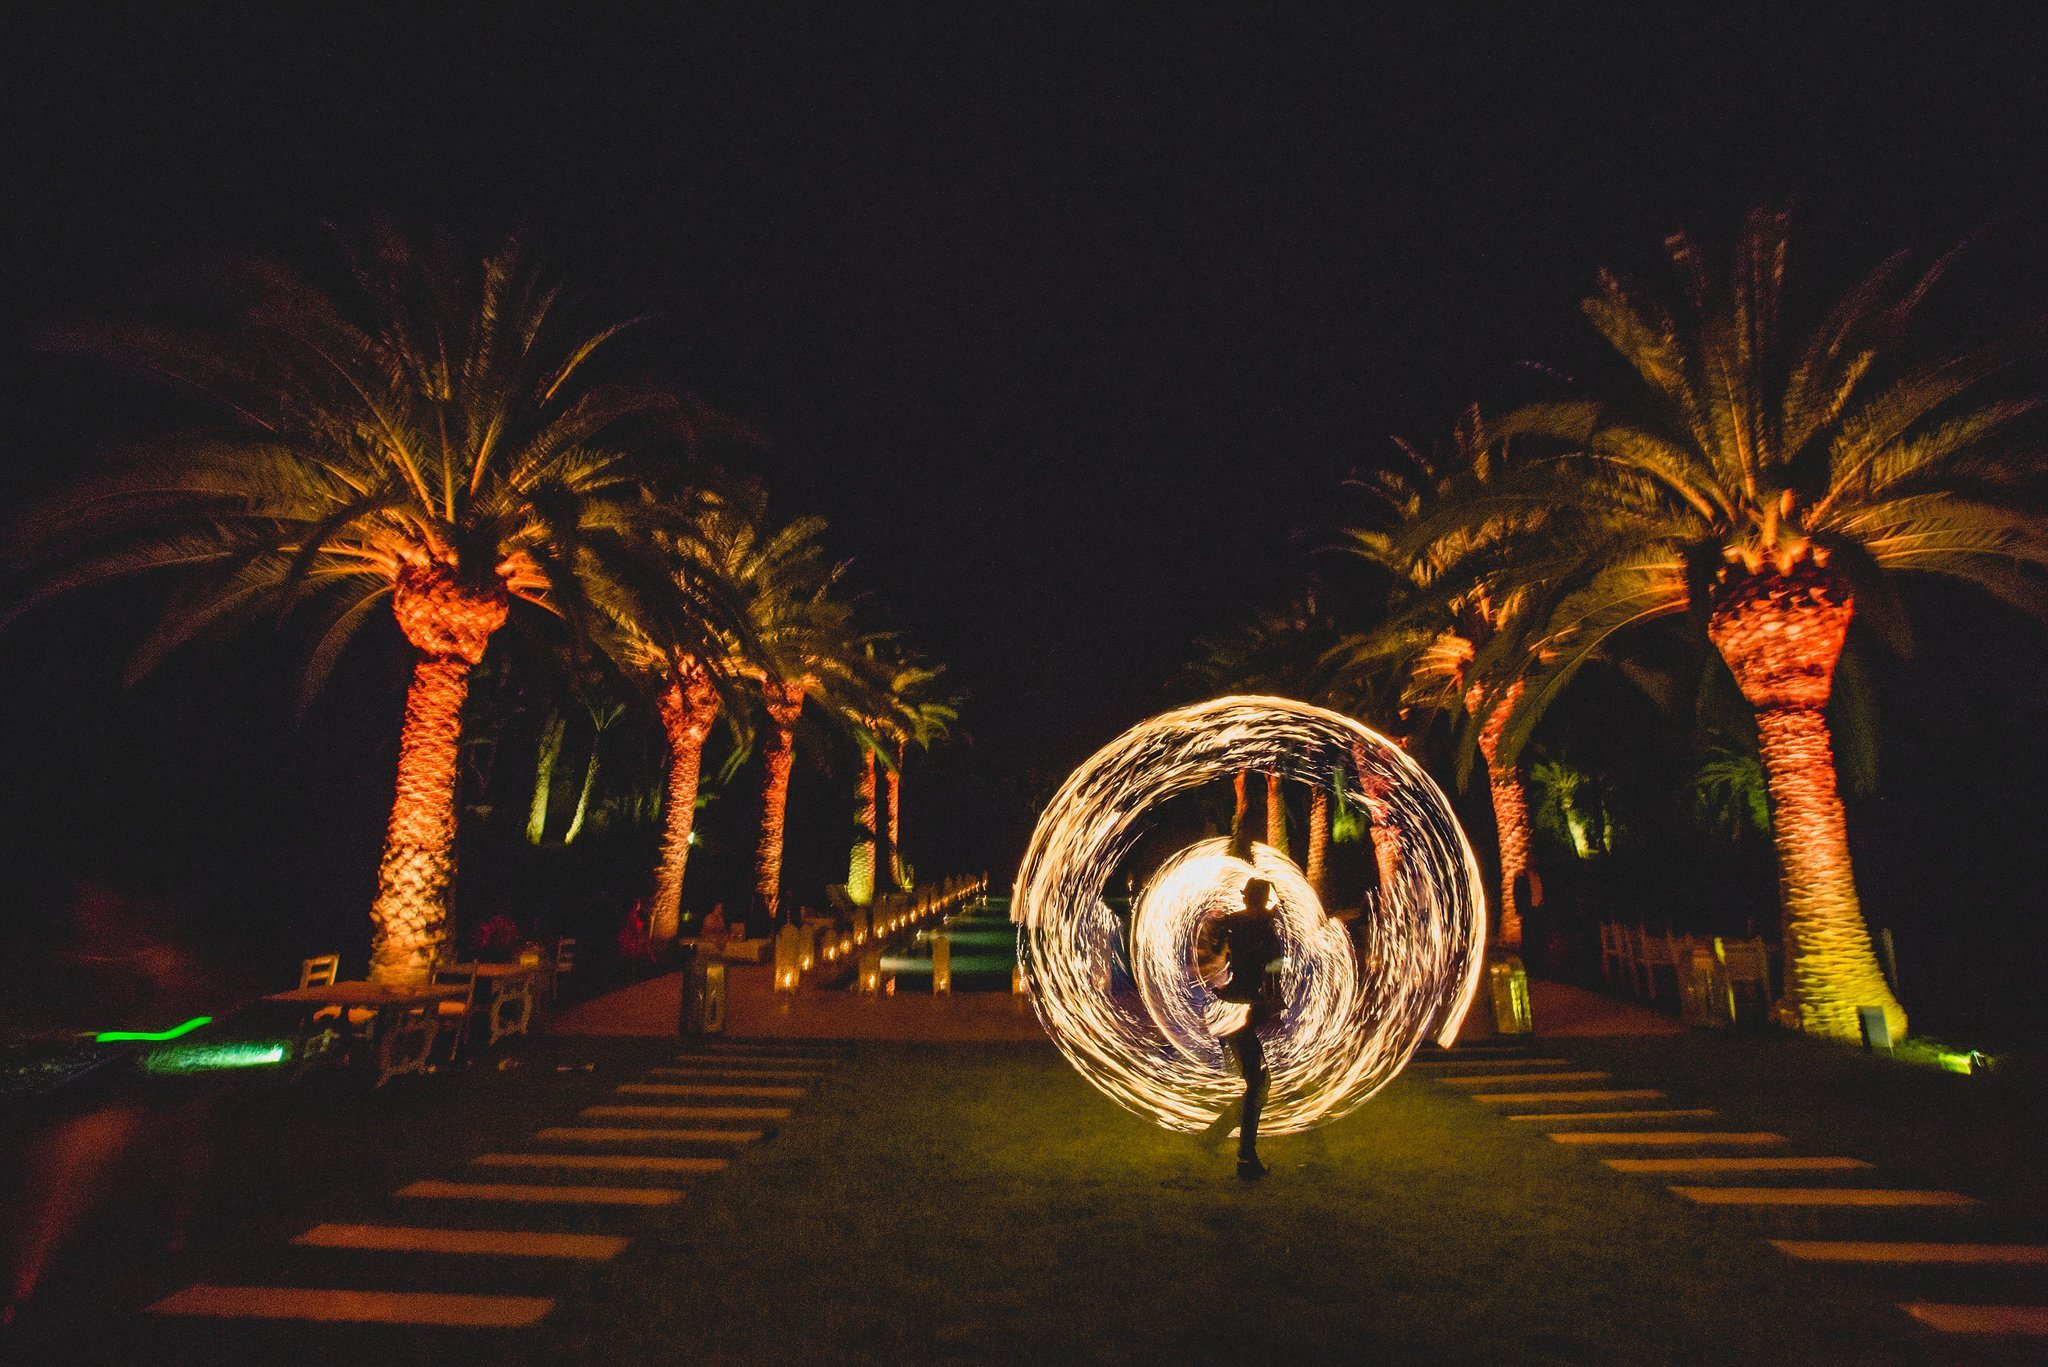 A fire dancer spins fire poi outside the venue among the palm trees